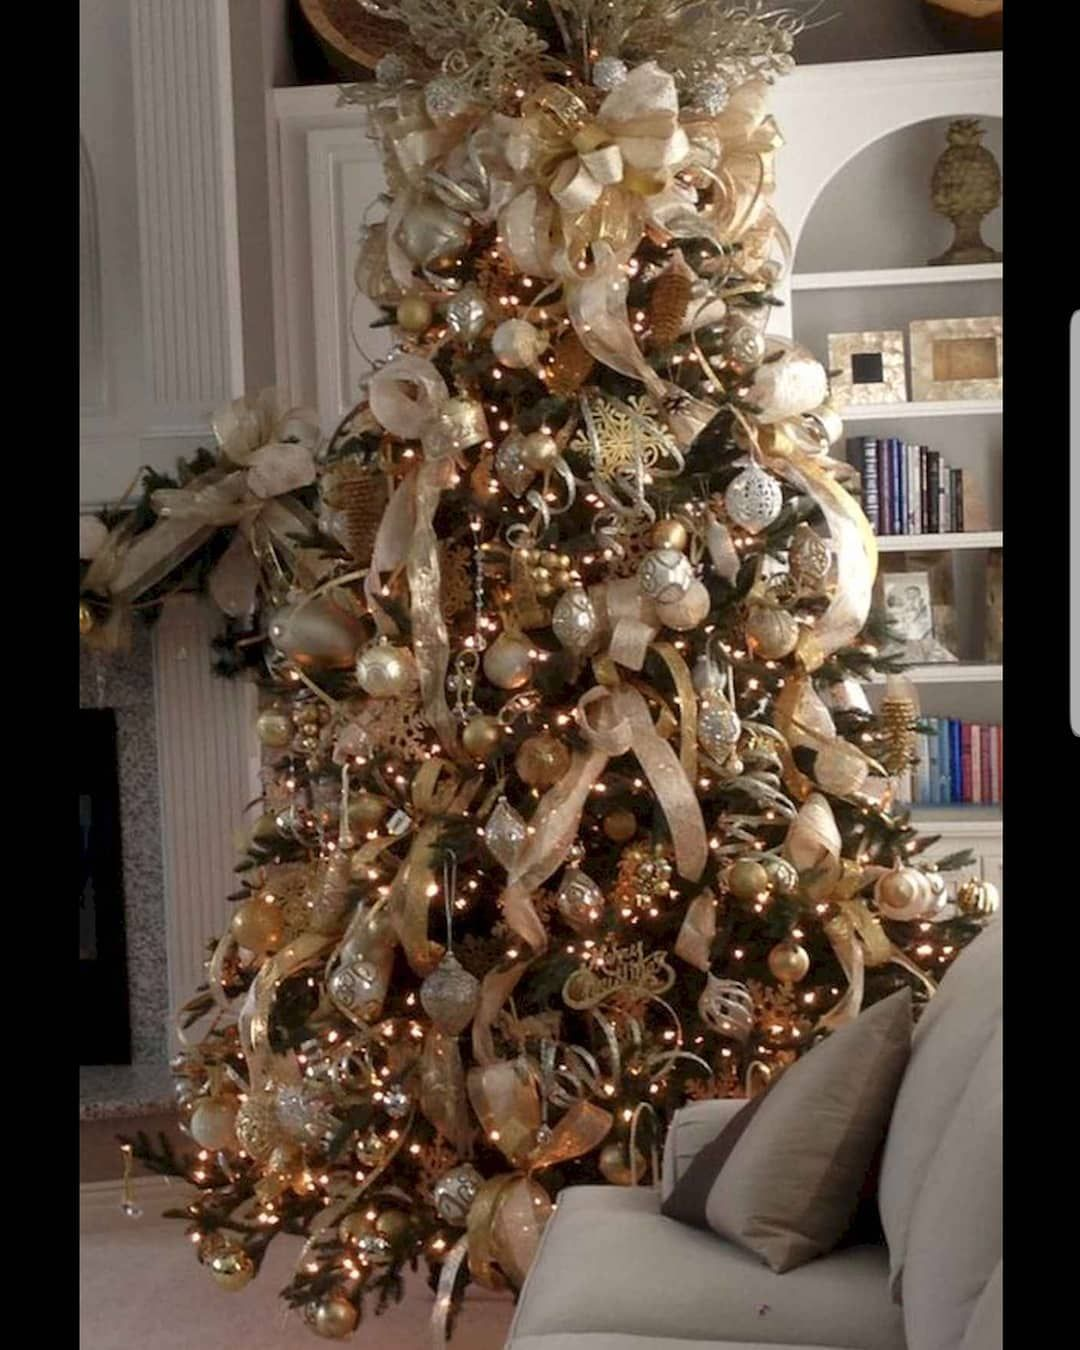 Which Tree 3 Options On My Page Elegant Christmas Trees Elegant Christmas Tree Decorations Christmas Tree Decorations